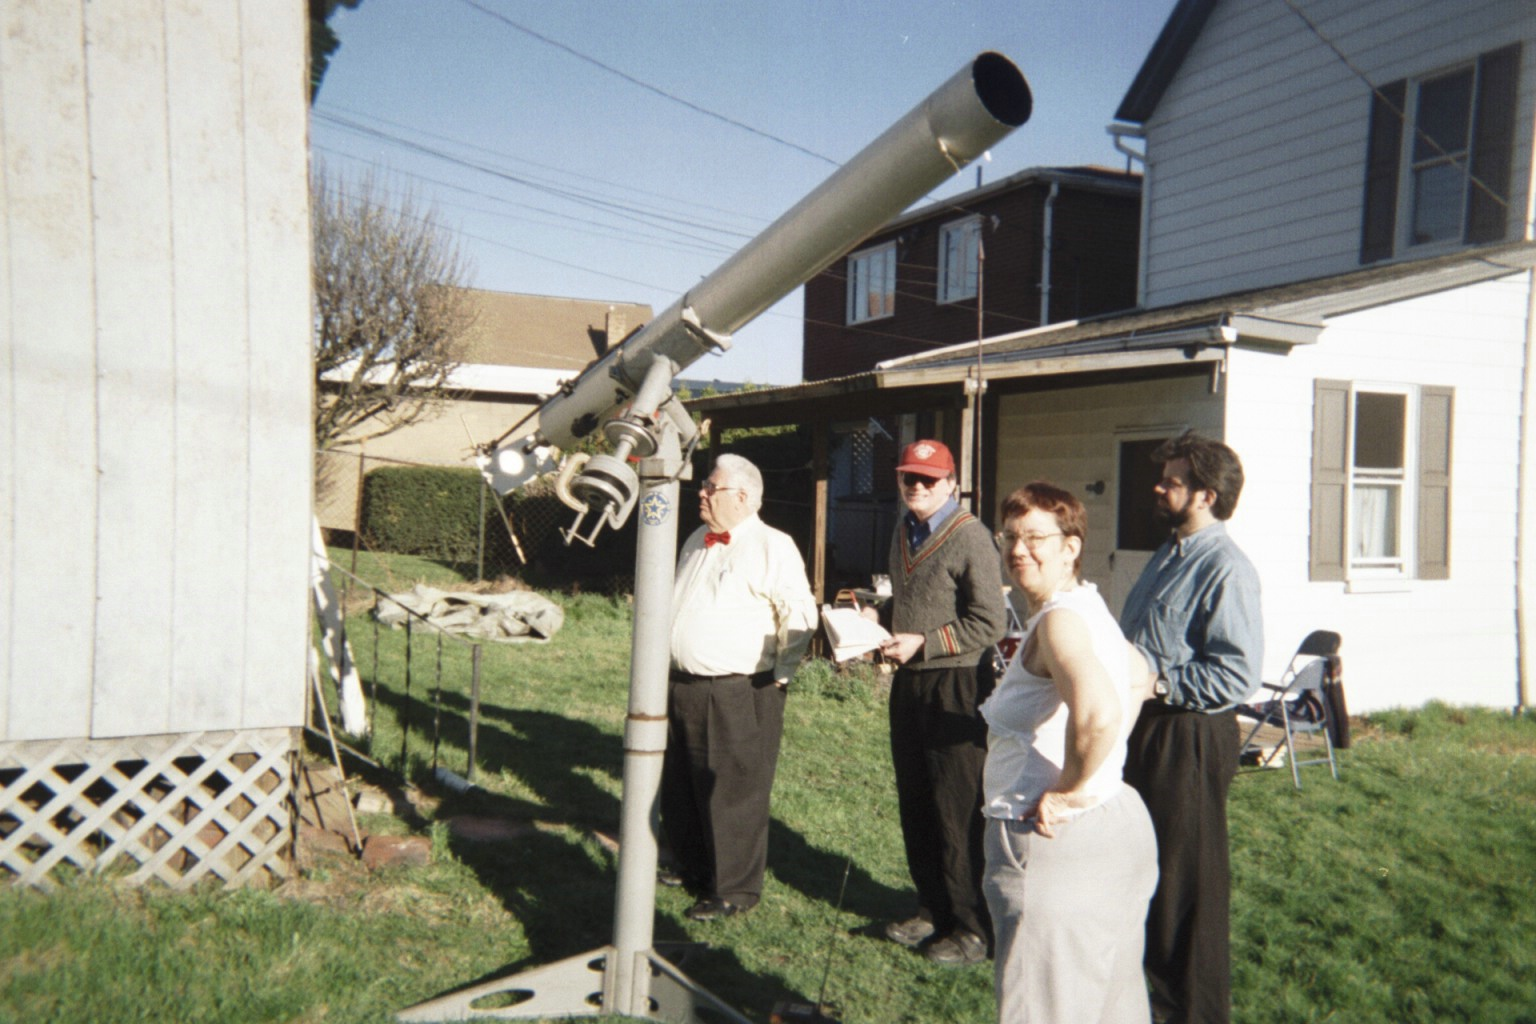 Telescope and observers during Solar Eclipse of 2005 April 8